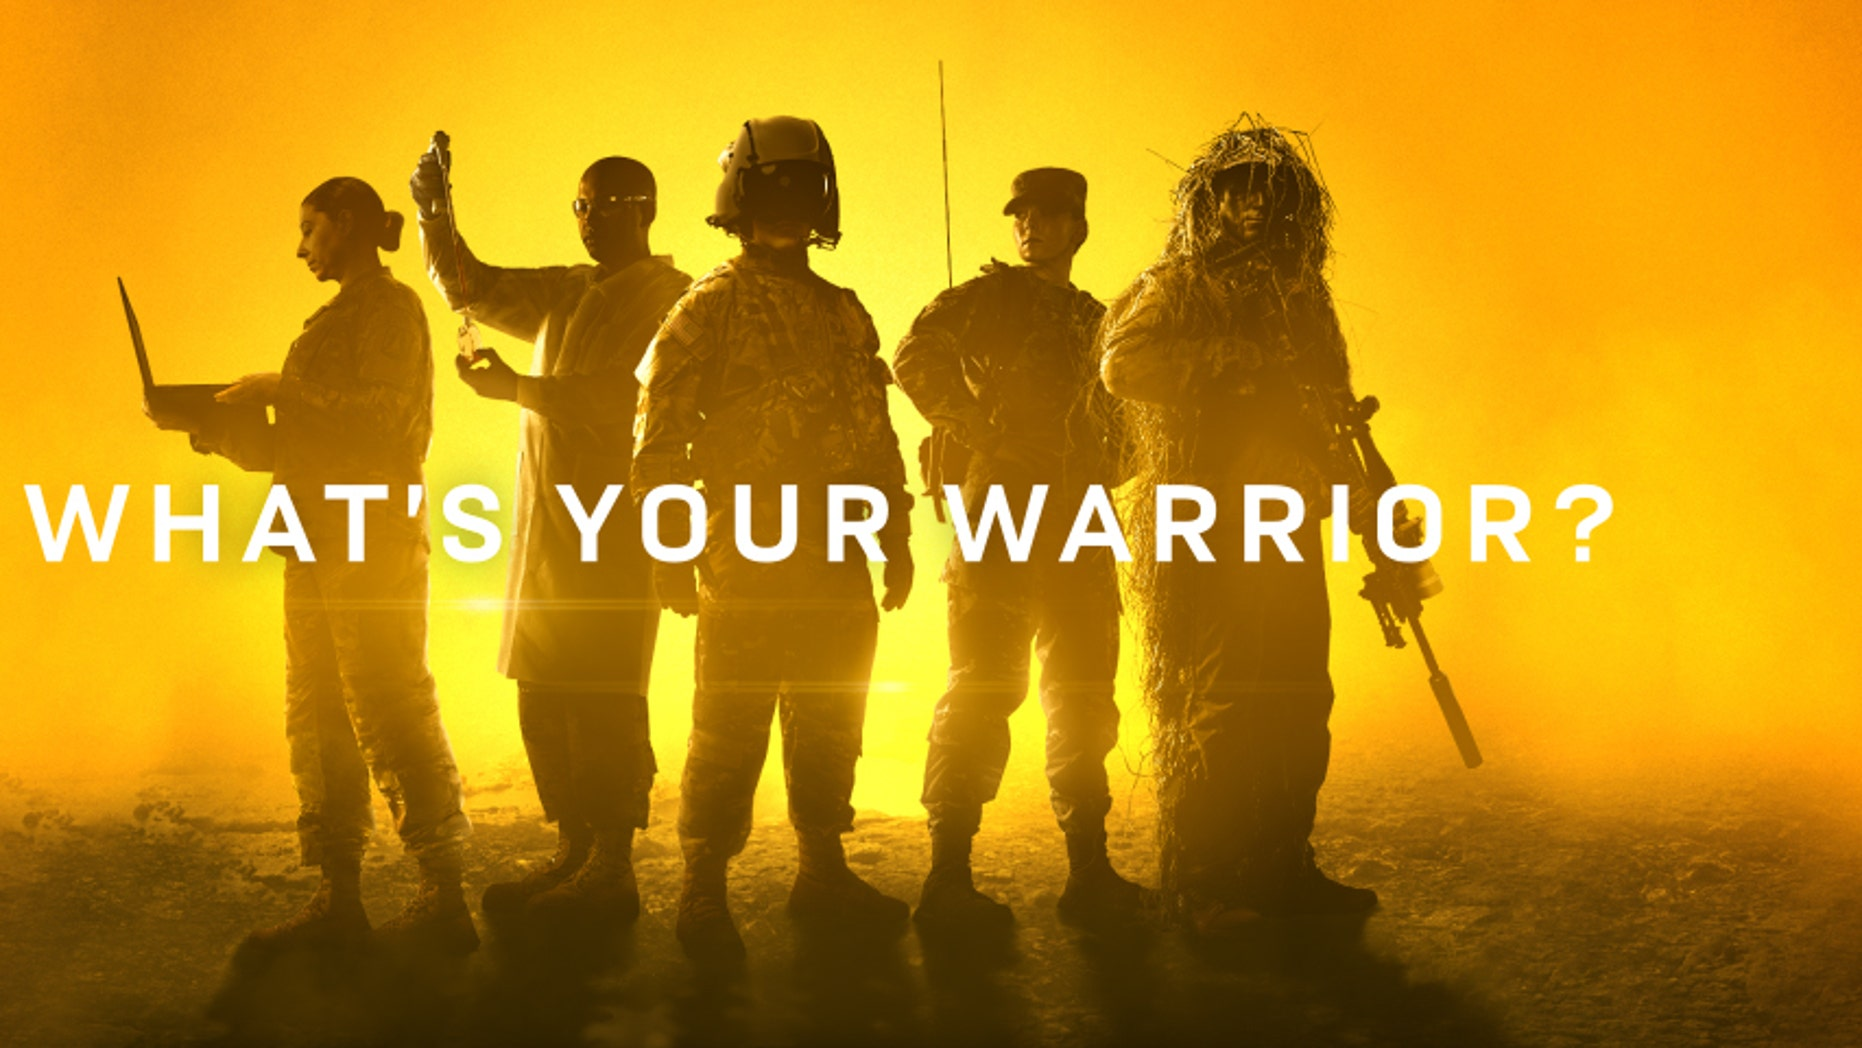 'What's Your warrior